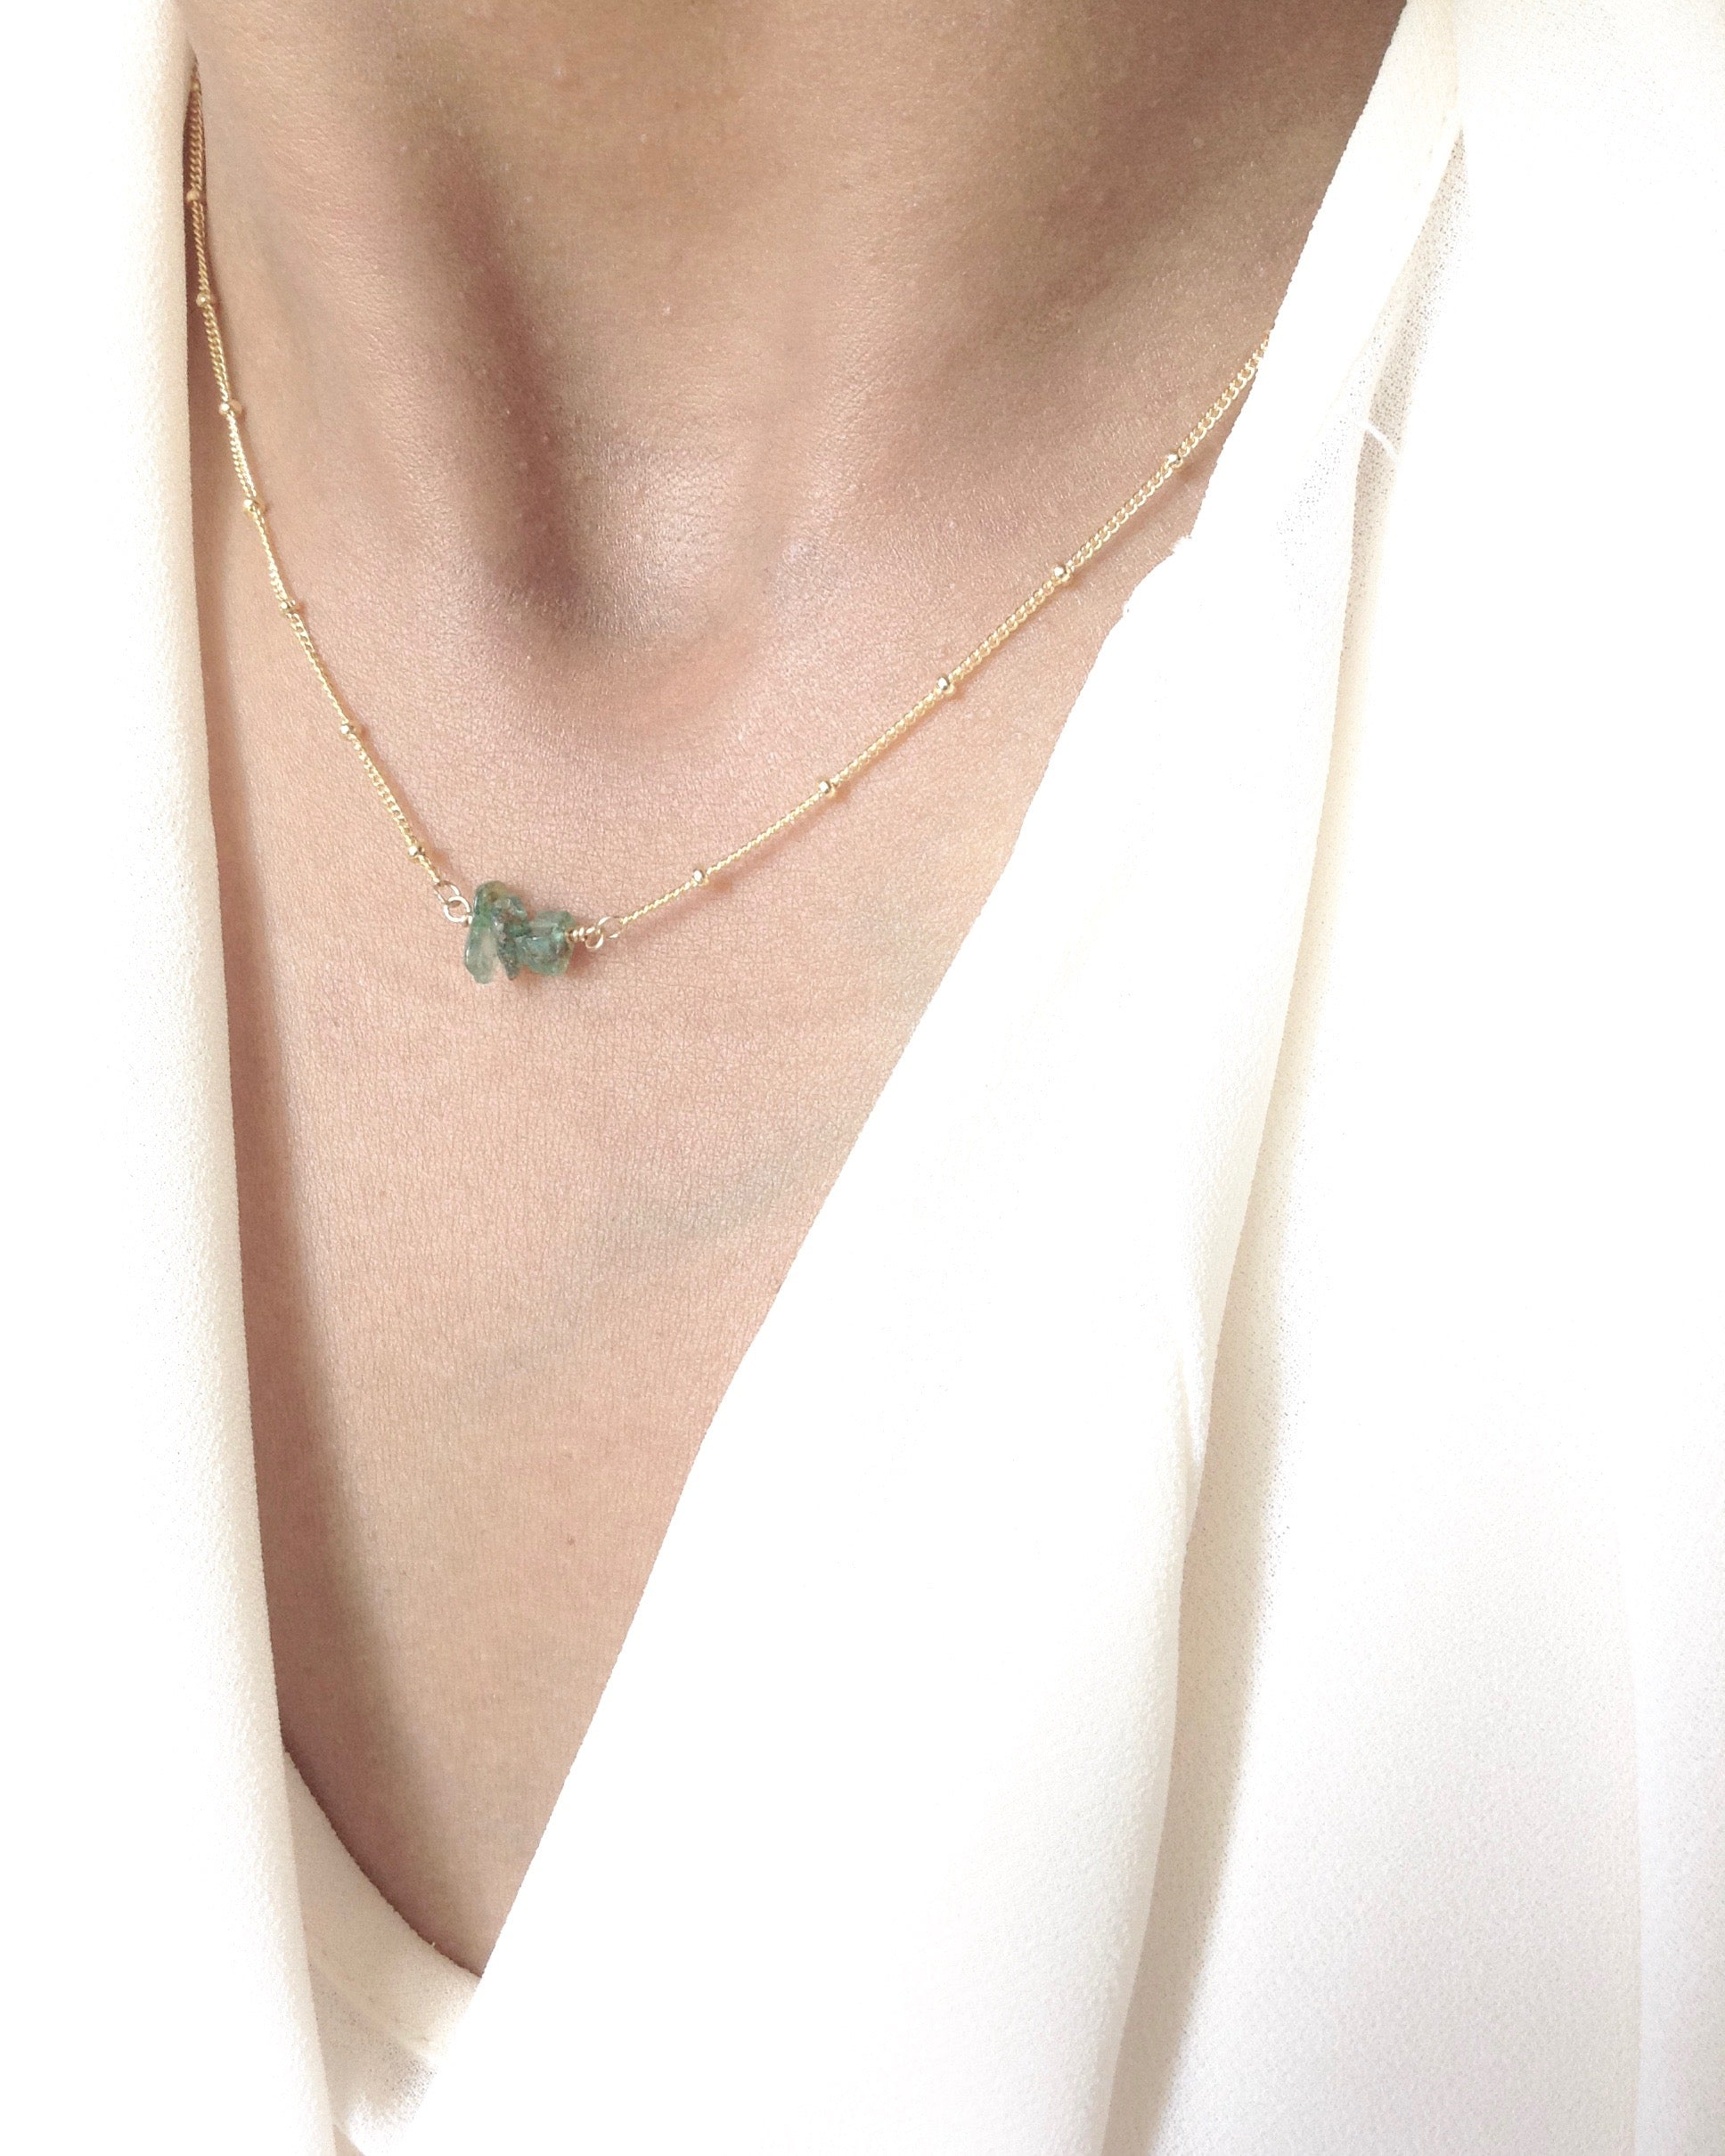 Dainty Raw Emerald Gemstone Bar Necklace in Gold Filled or Sterling Silver | IB Jewelry